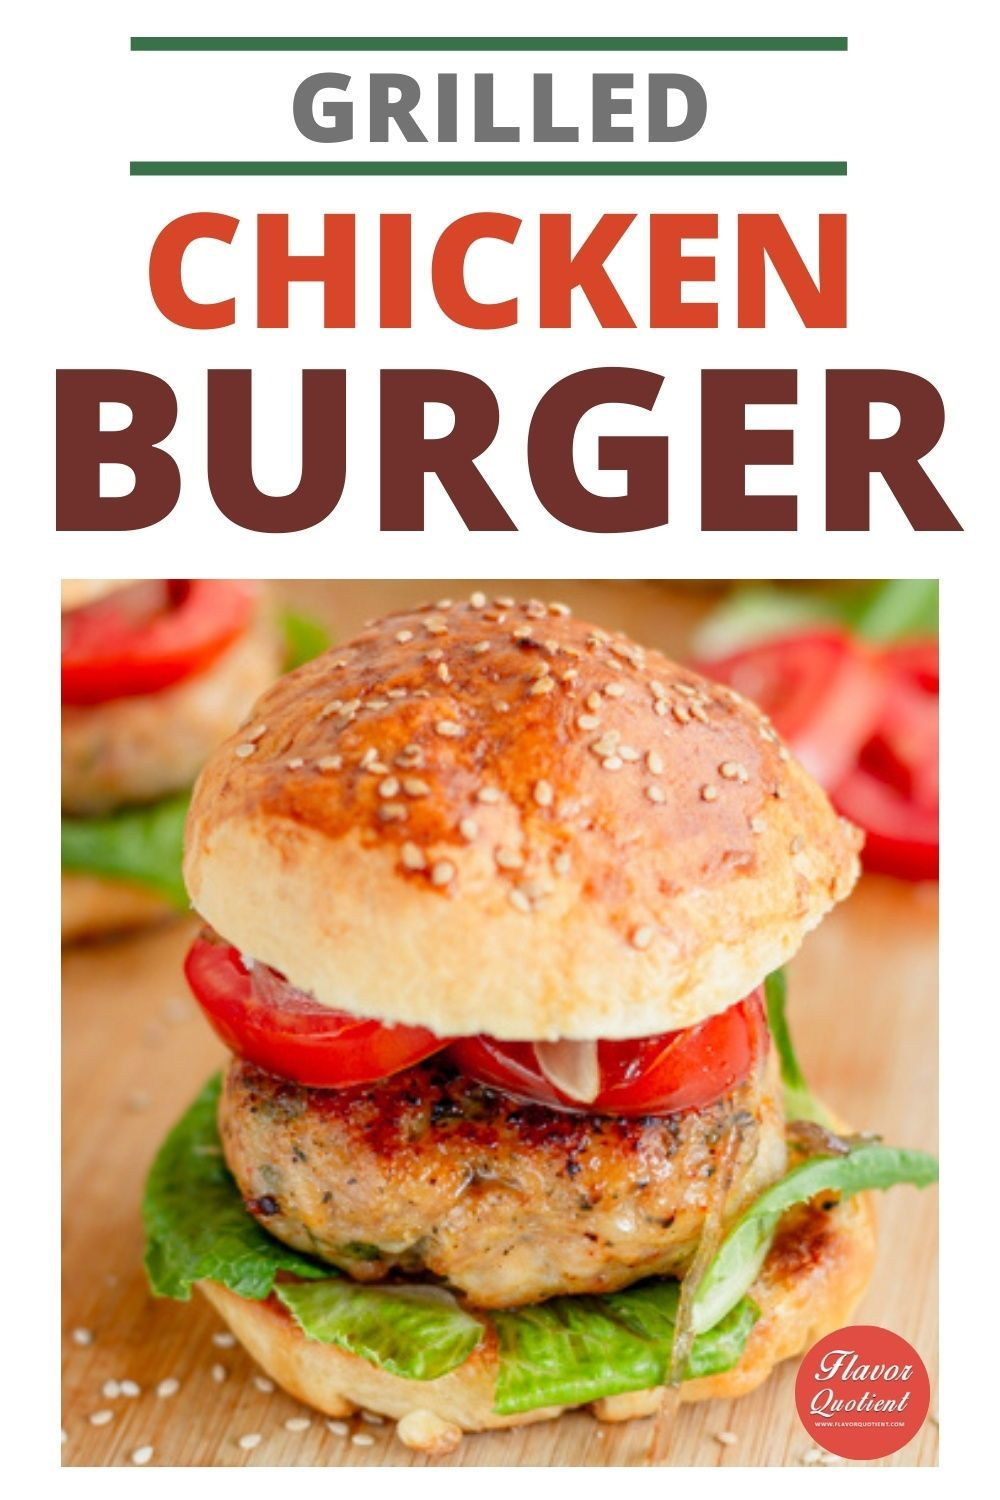 Grilled Chicken Burger W Homemade Hamburger Buns Recipe Chicken Burgers Homemade Hamburgers Grilled Chicken